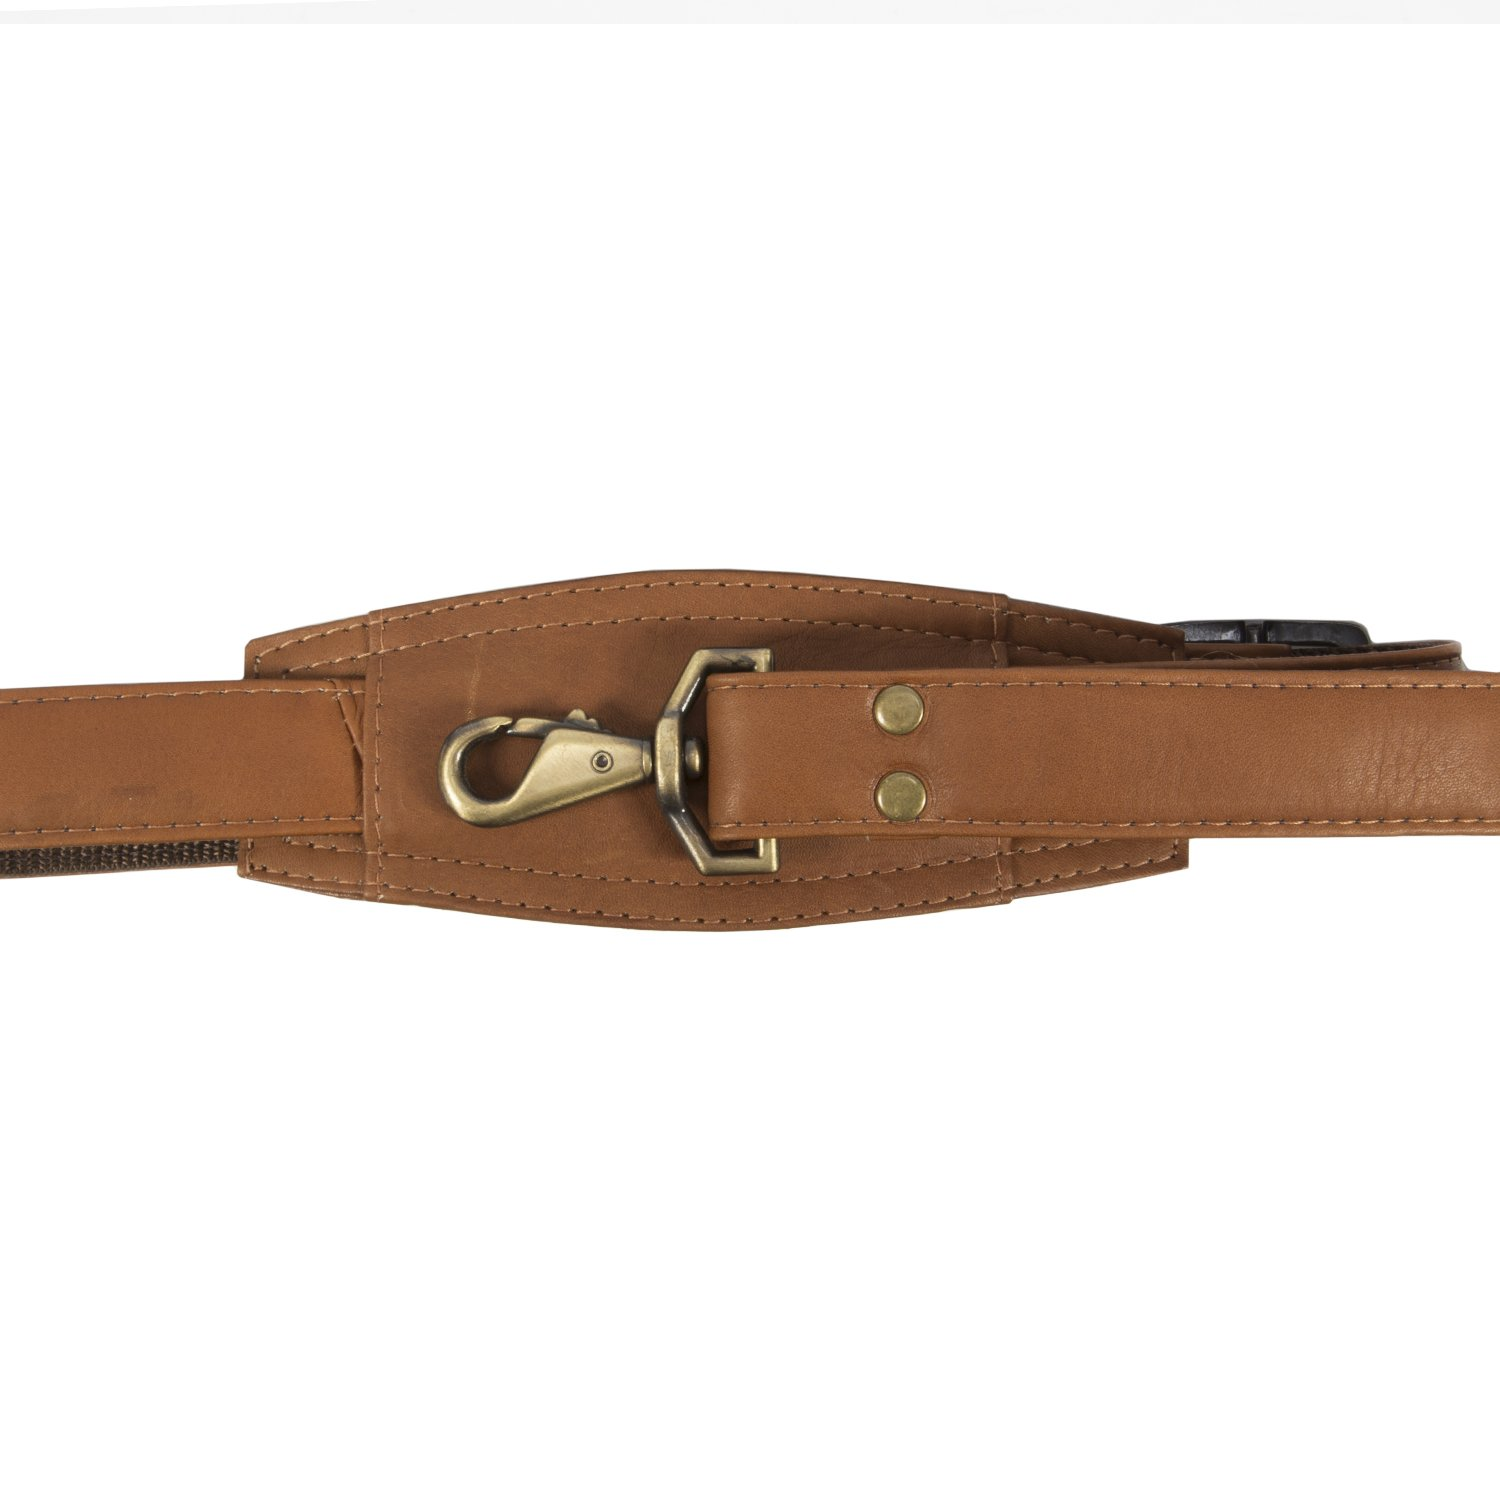 Muiska Leather Top-Zip 17 Inch Laptop Briefcase, Saddle, One Size by Muiska (Image #7)